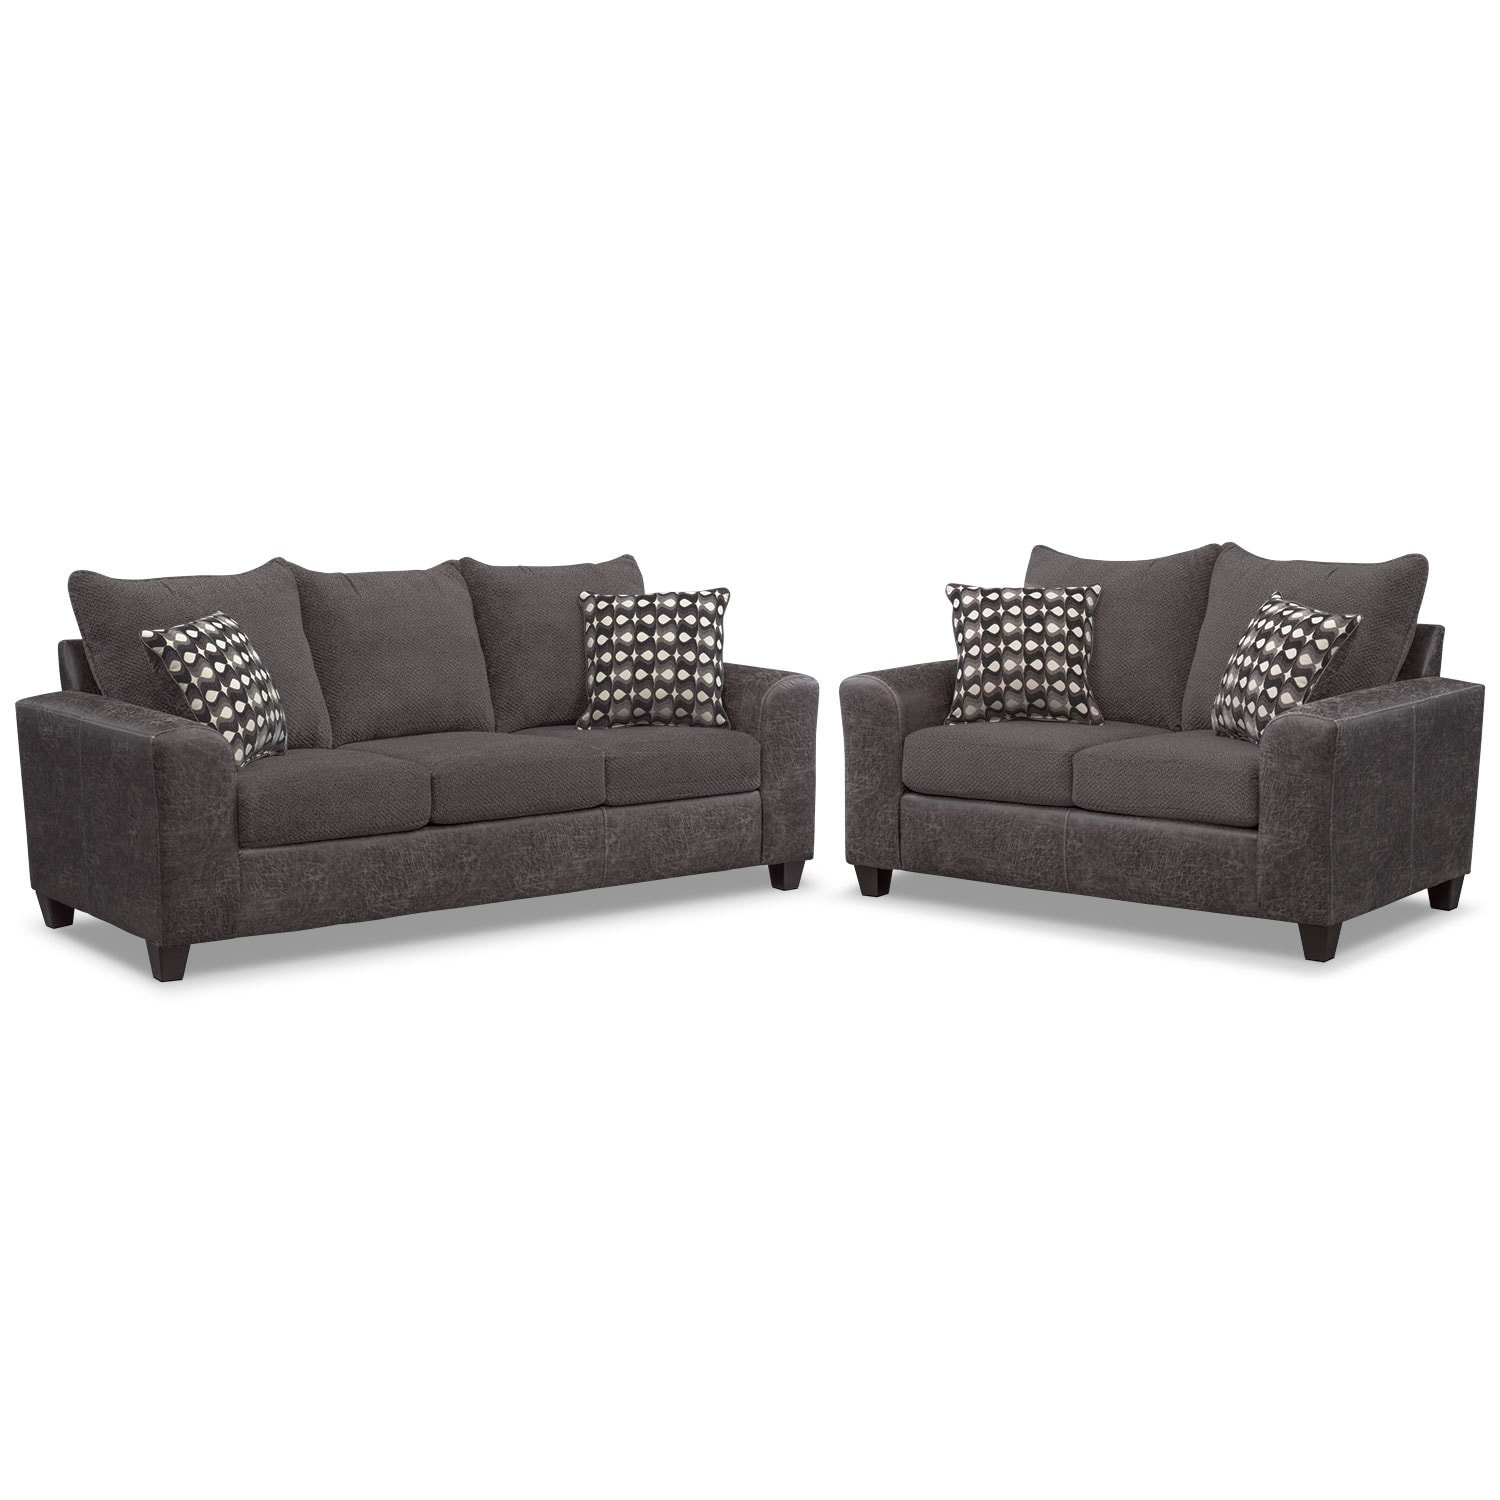 Living Room Furniture - Brando Queen Innerspring Sleeper Sofa and Loveseat Set - Smoke